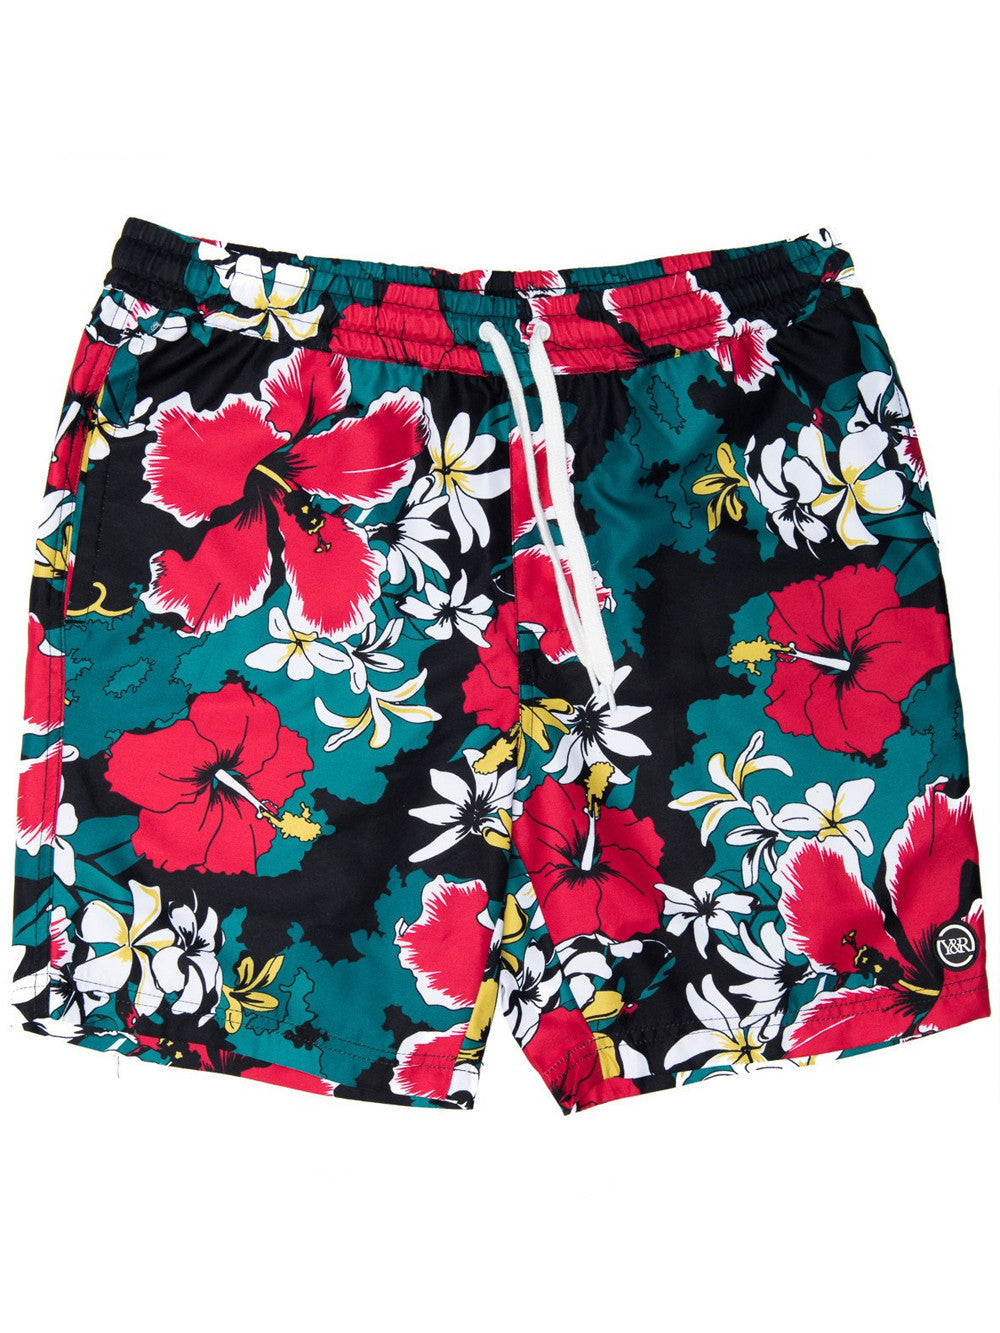 Young and Reckless Mens - Bottoms - Shorts Bora Bora Boardshorts - Deck Fit